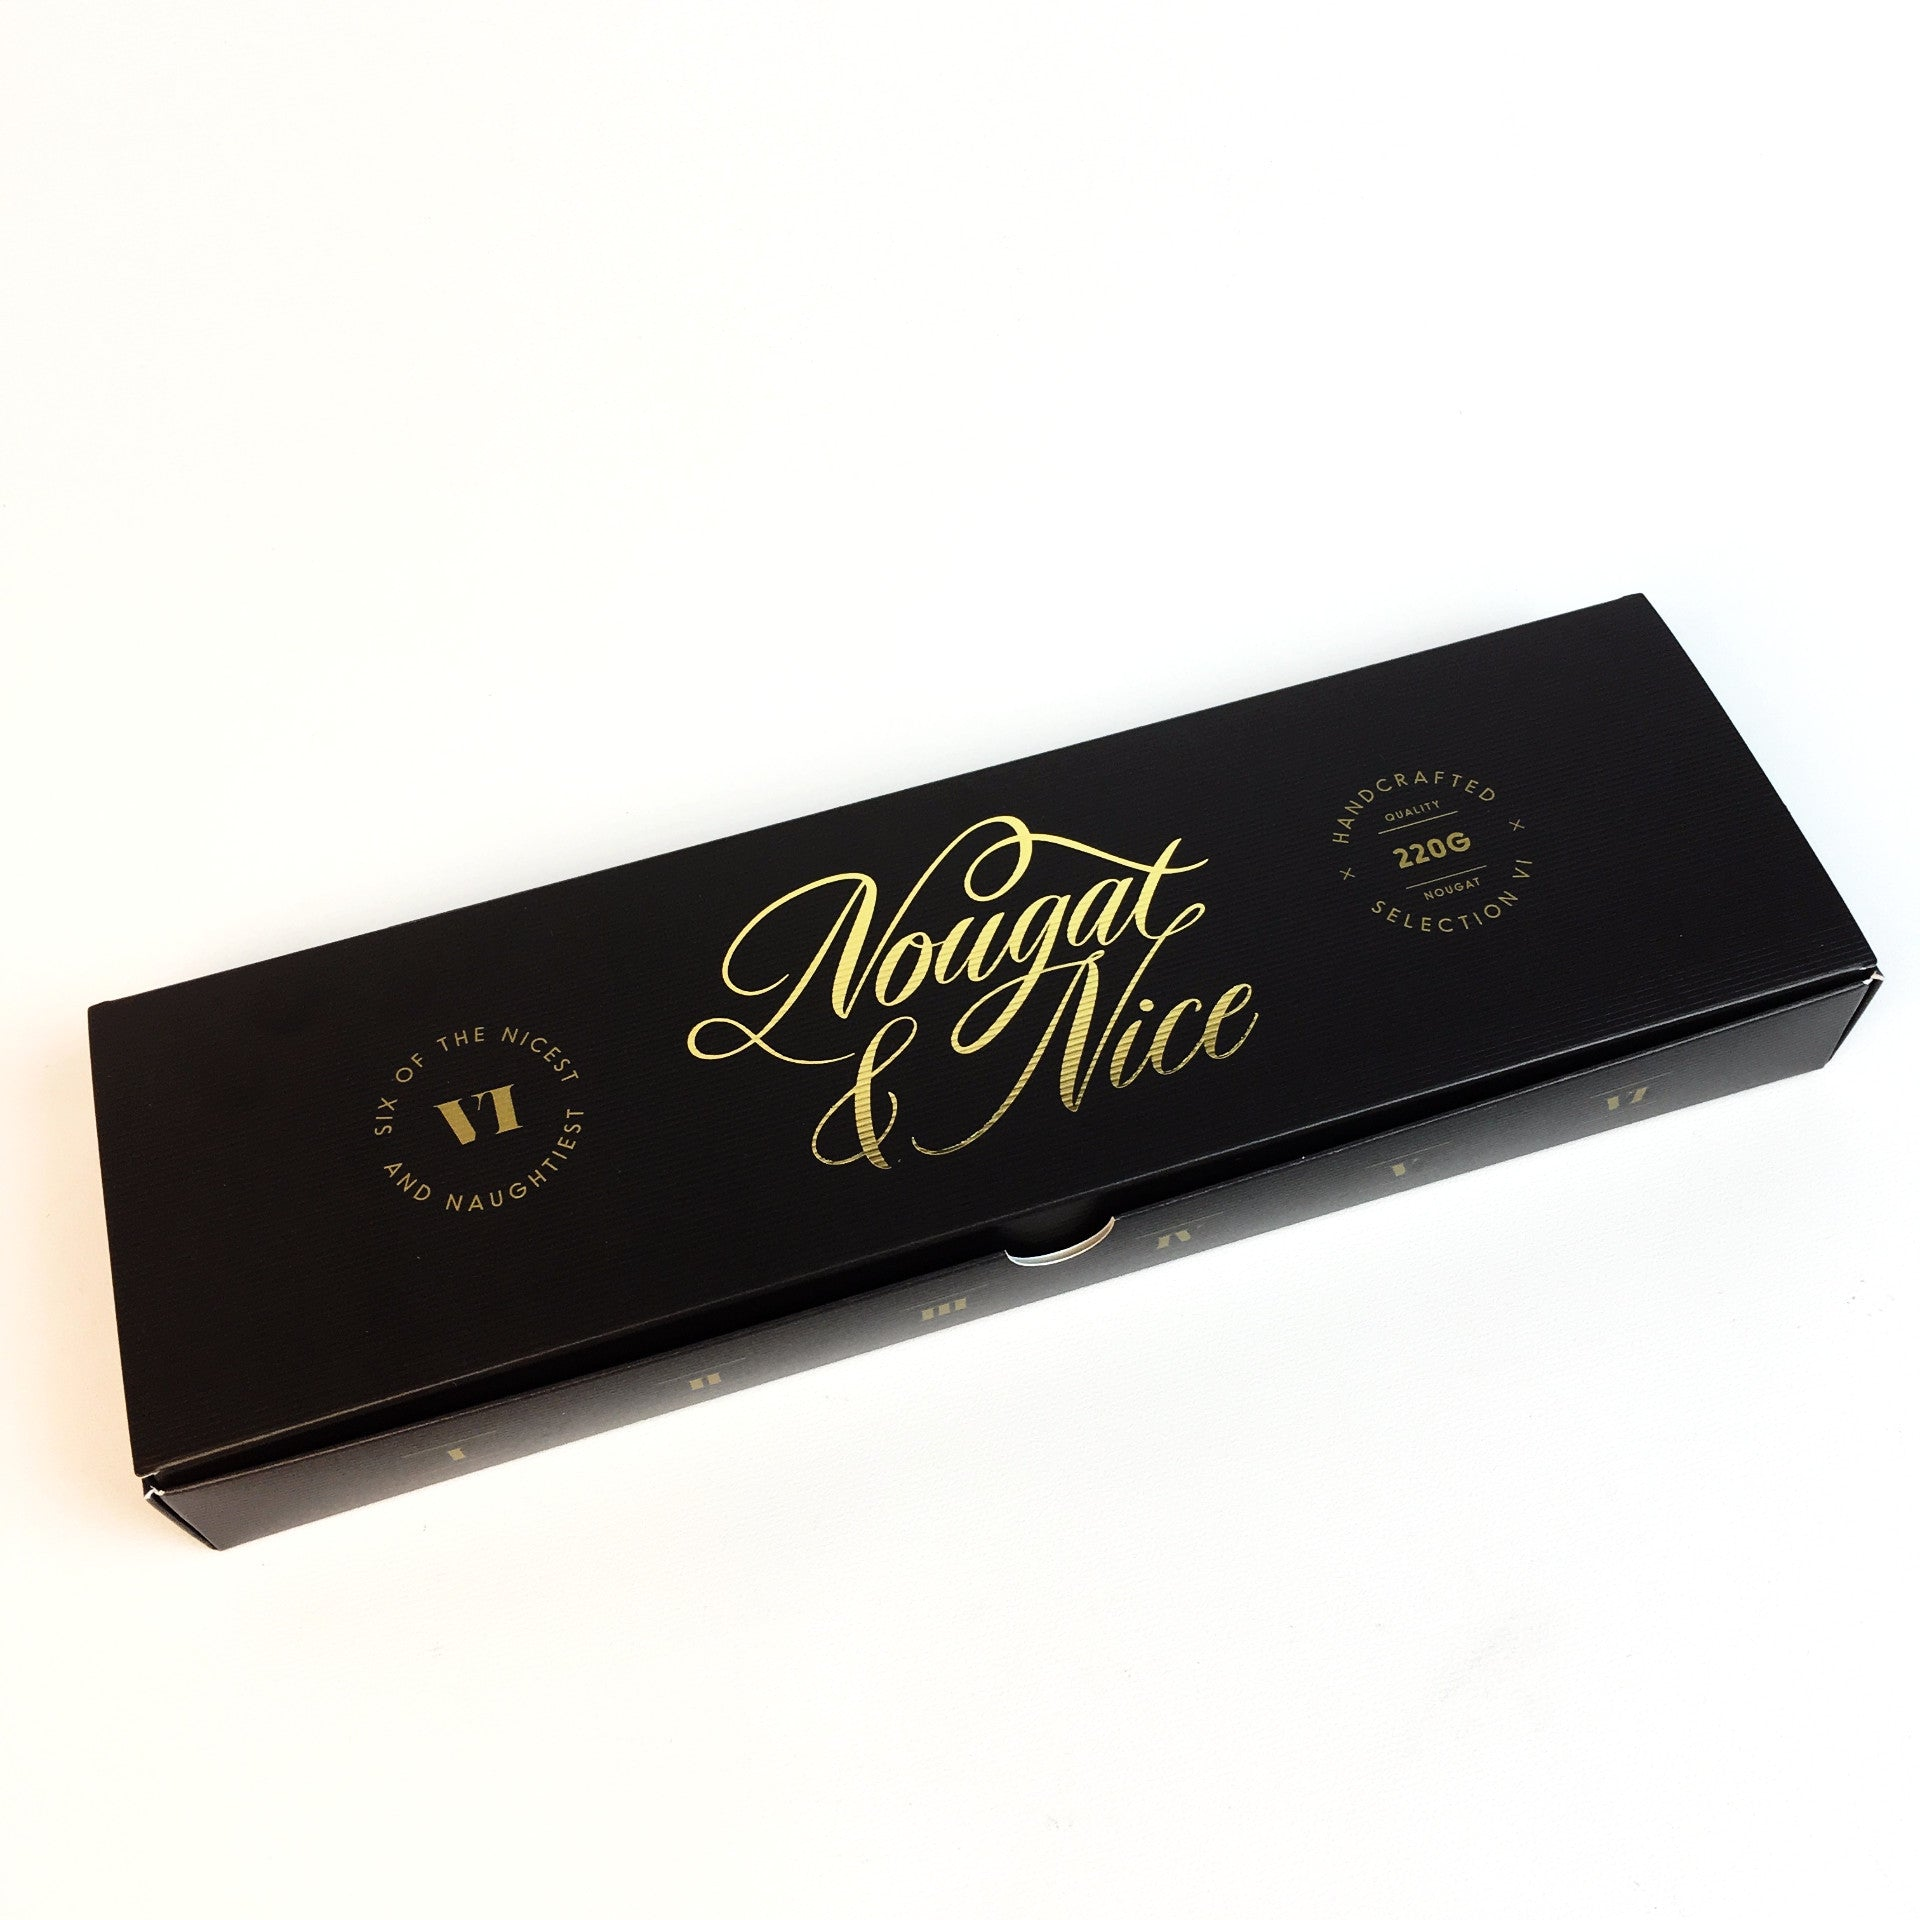 Nougat and Nice 6pce Gift Box